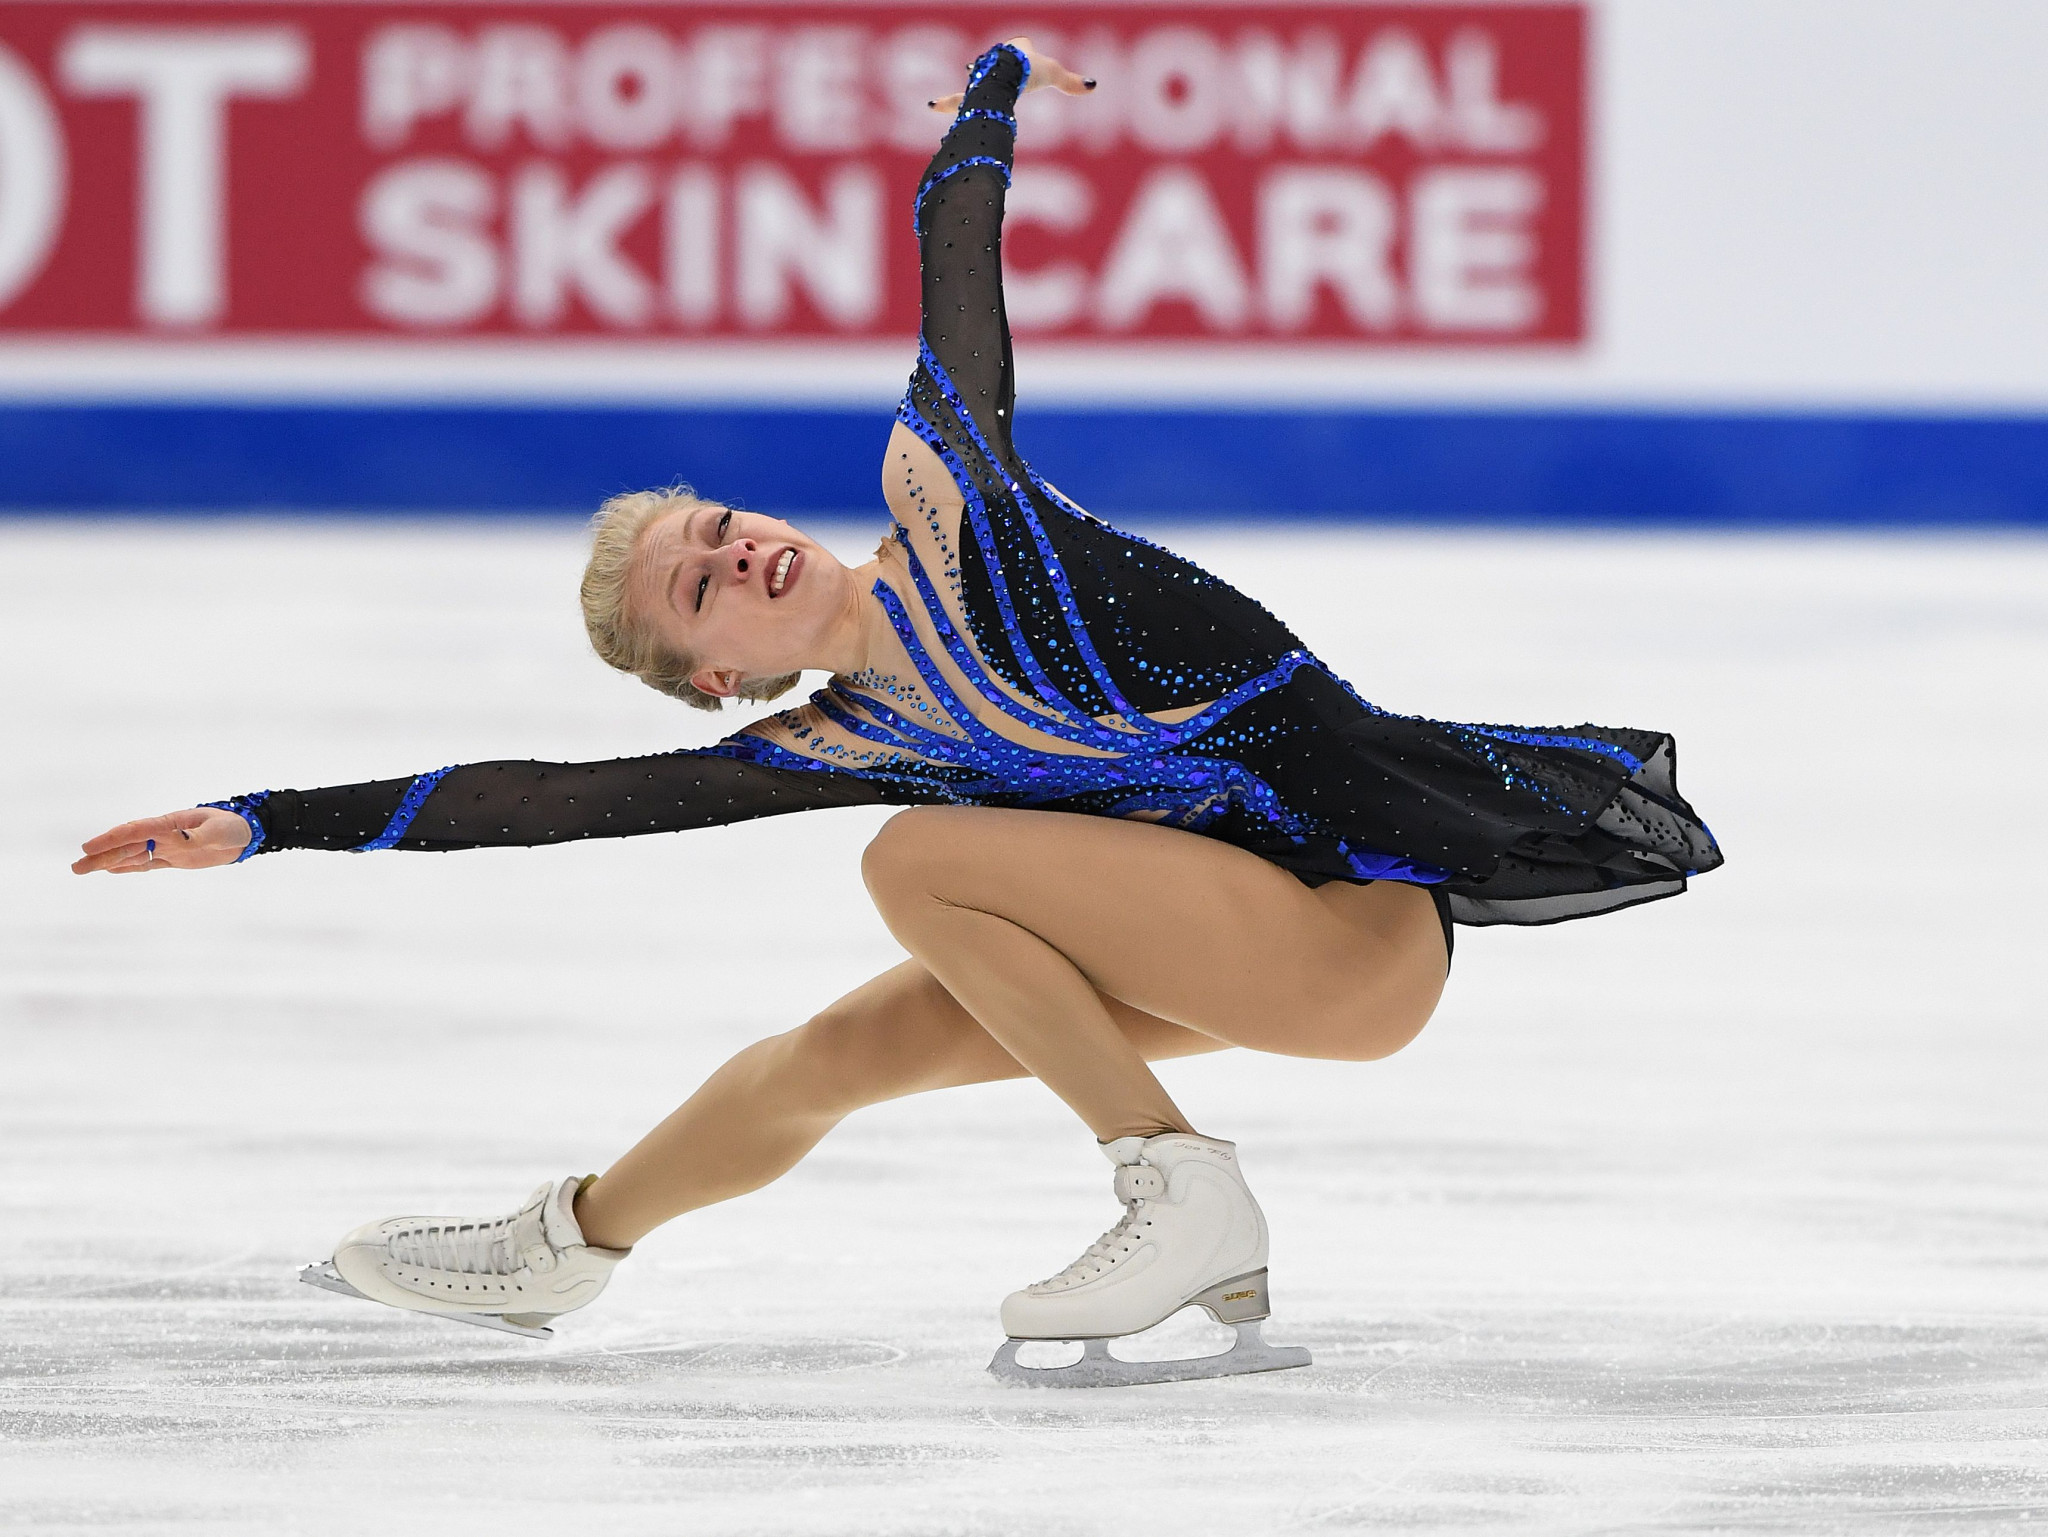 America's Bradie Tennell topped the women's short programme standings ©Getty Images